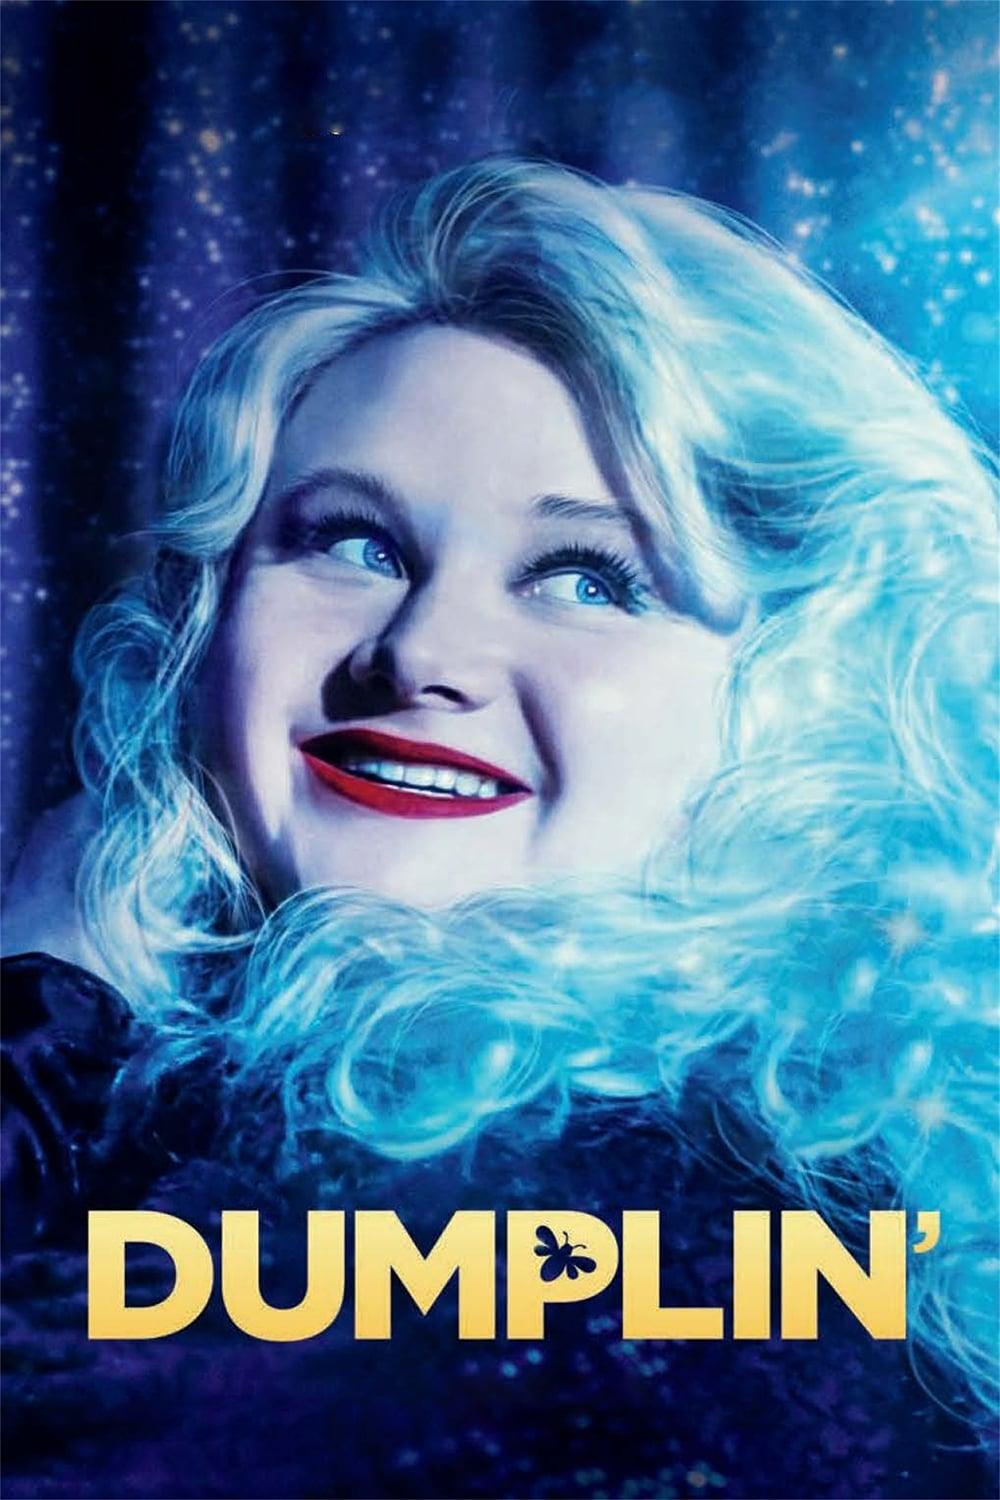 Dumplin\' (2019) Torrent - WEB-DL 720p e 1080p Dublado / Dual Áudio 5.1 Downoad